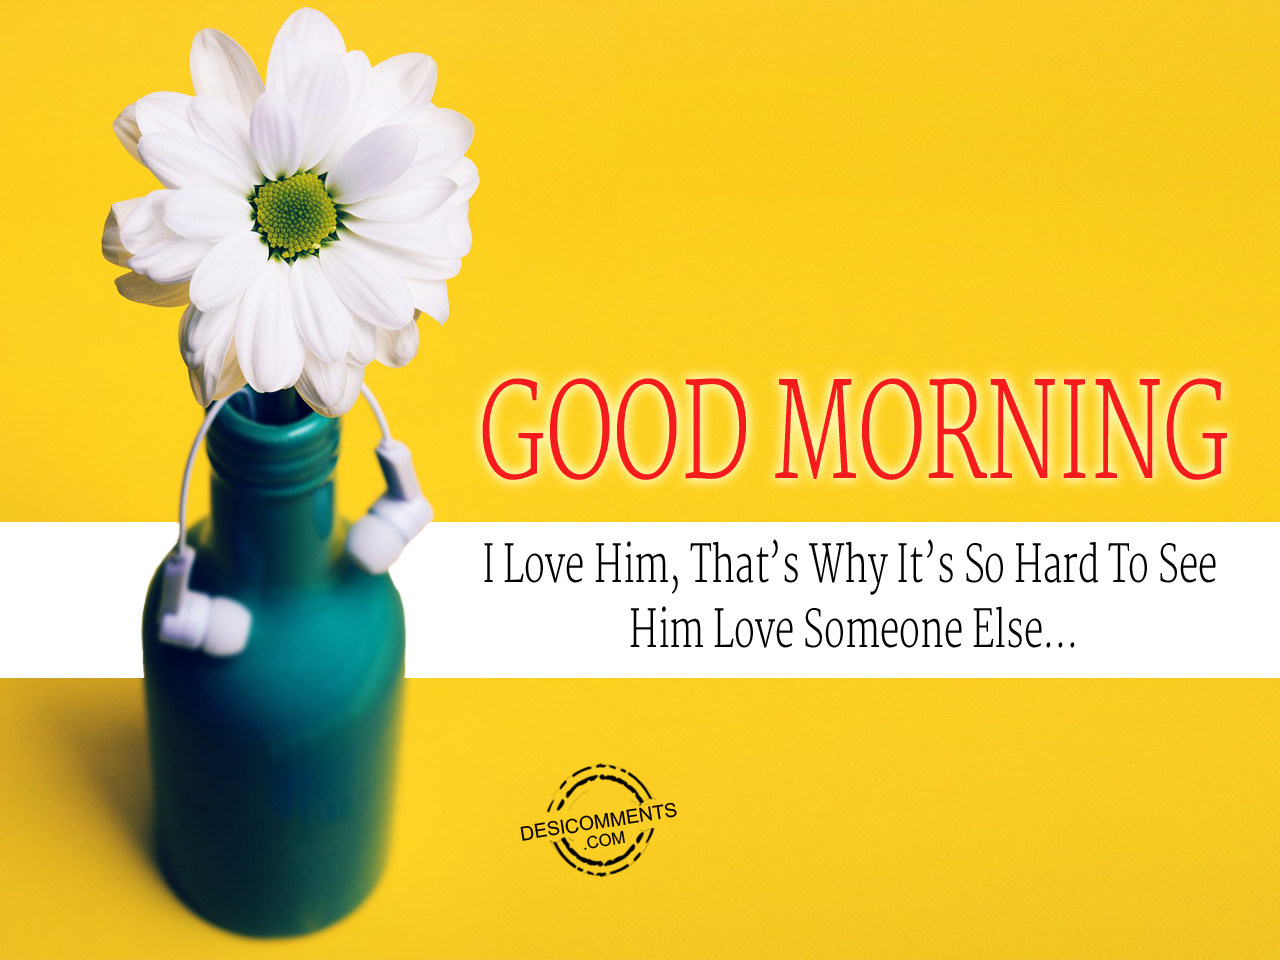 Good Morning Quotes For Him: I Love Him Thats Why Its So Hard To See